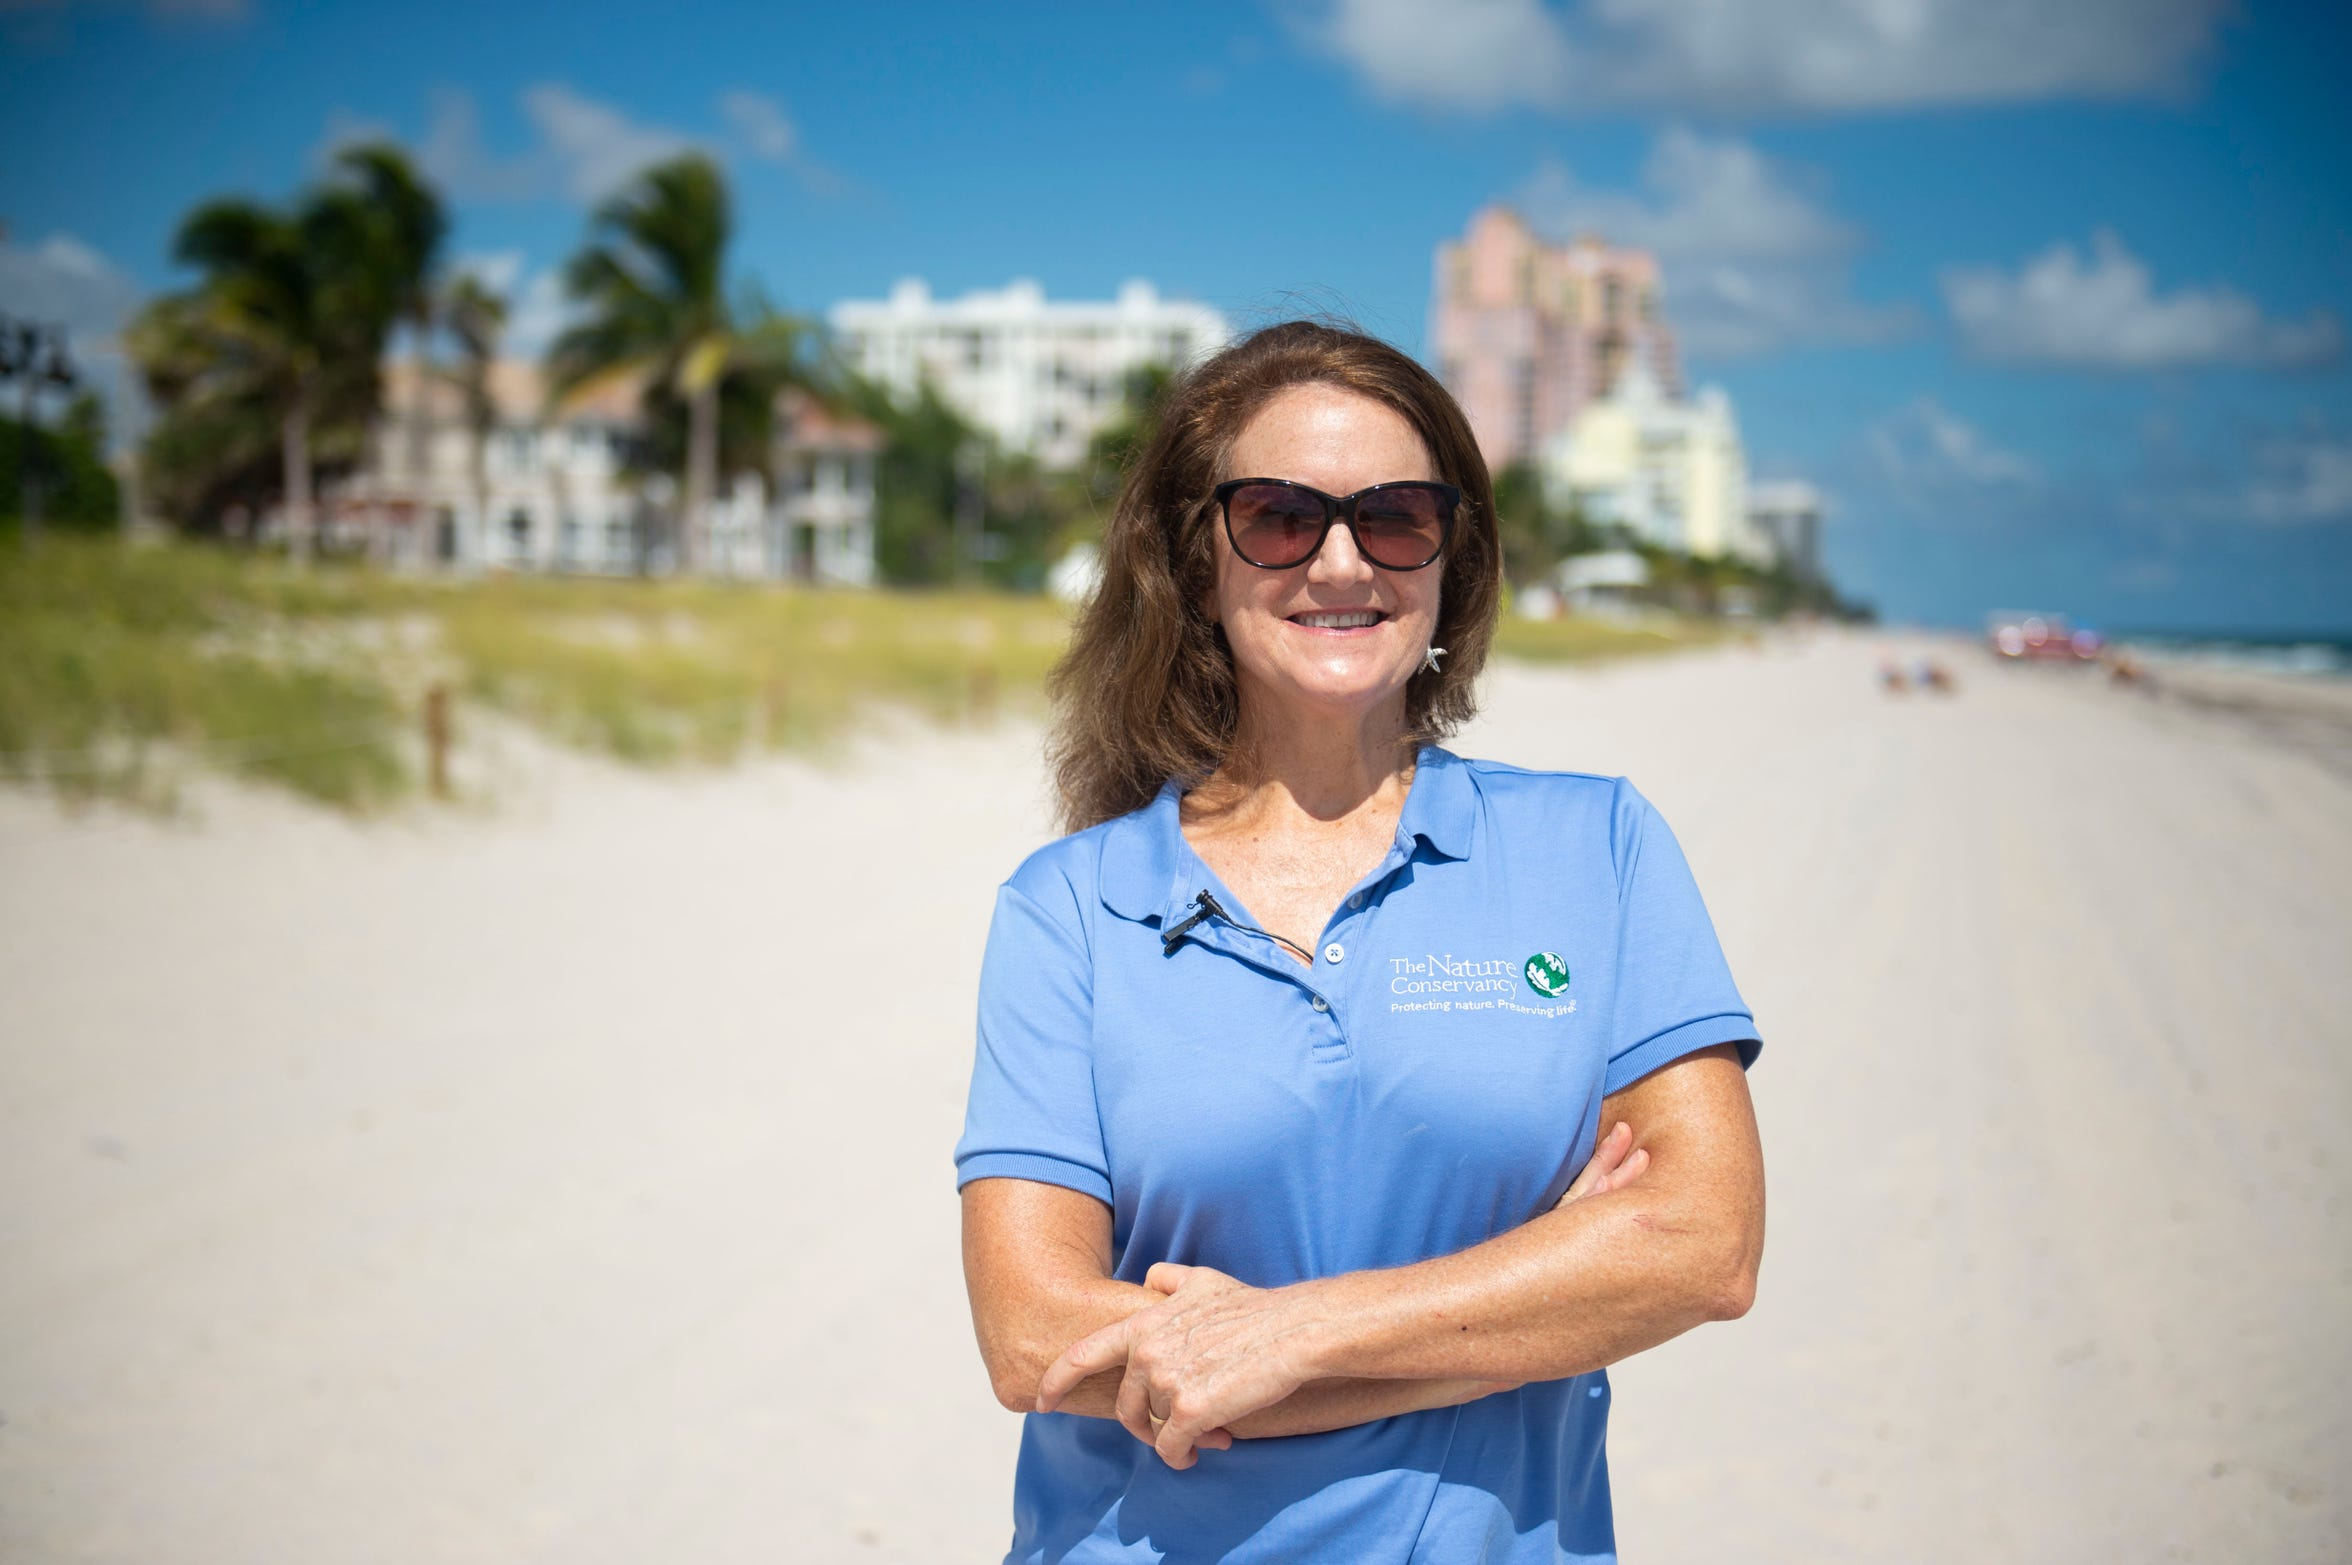 "Laura Geselbracht, 59, of Fort Lauderdale, is a senior marine scientist at The Nature Conservancy who is concerned about climate change, sea level rise and coastal resiliency this election year. Geselbracht hopes to see individuals, all levels of governments, corporations and small businesses making an effort to battle climate change. ""It's amazing what we can accomplish when we put our mind to it. But if we're just avoiding the problem, that's not helping anybody over the long term,"" she said."